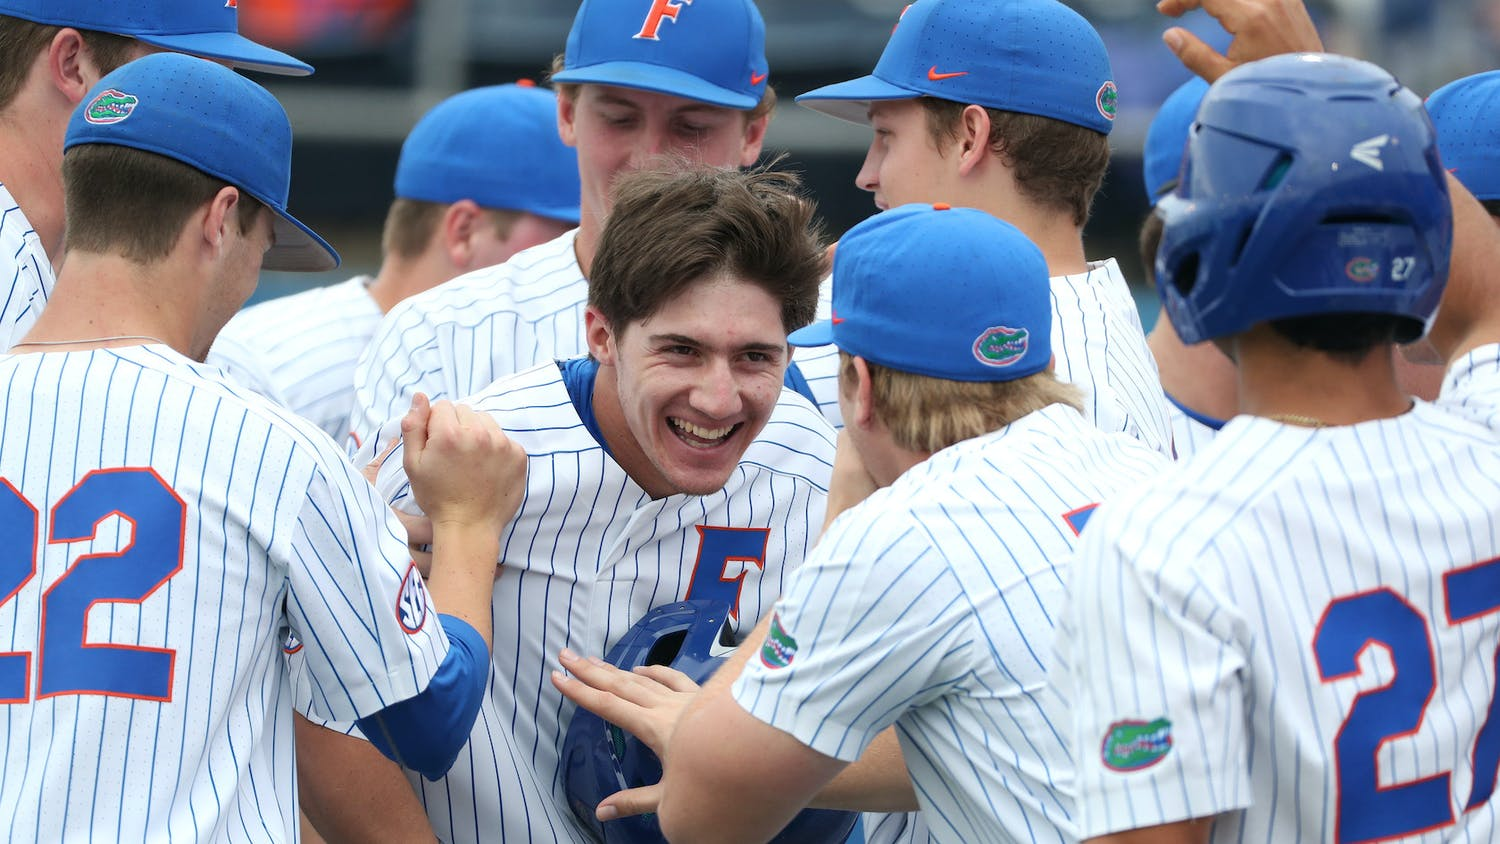 Jacob Young extended his hitting streak to 24 as UF defeated Sanford 8-4.